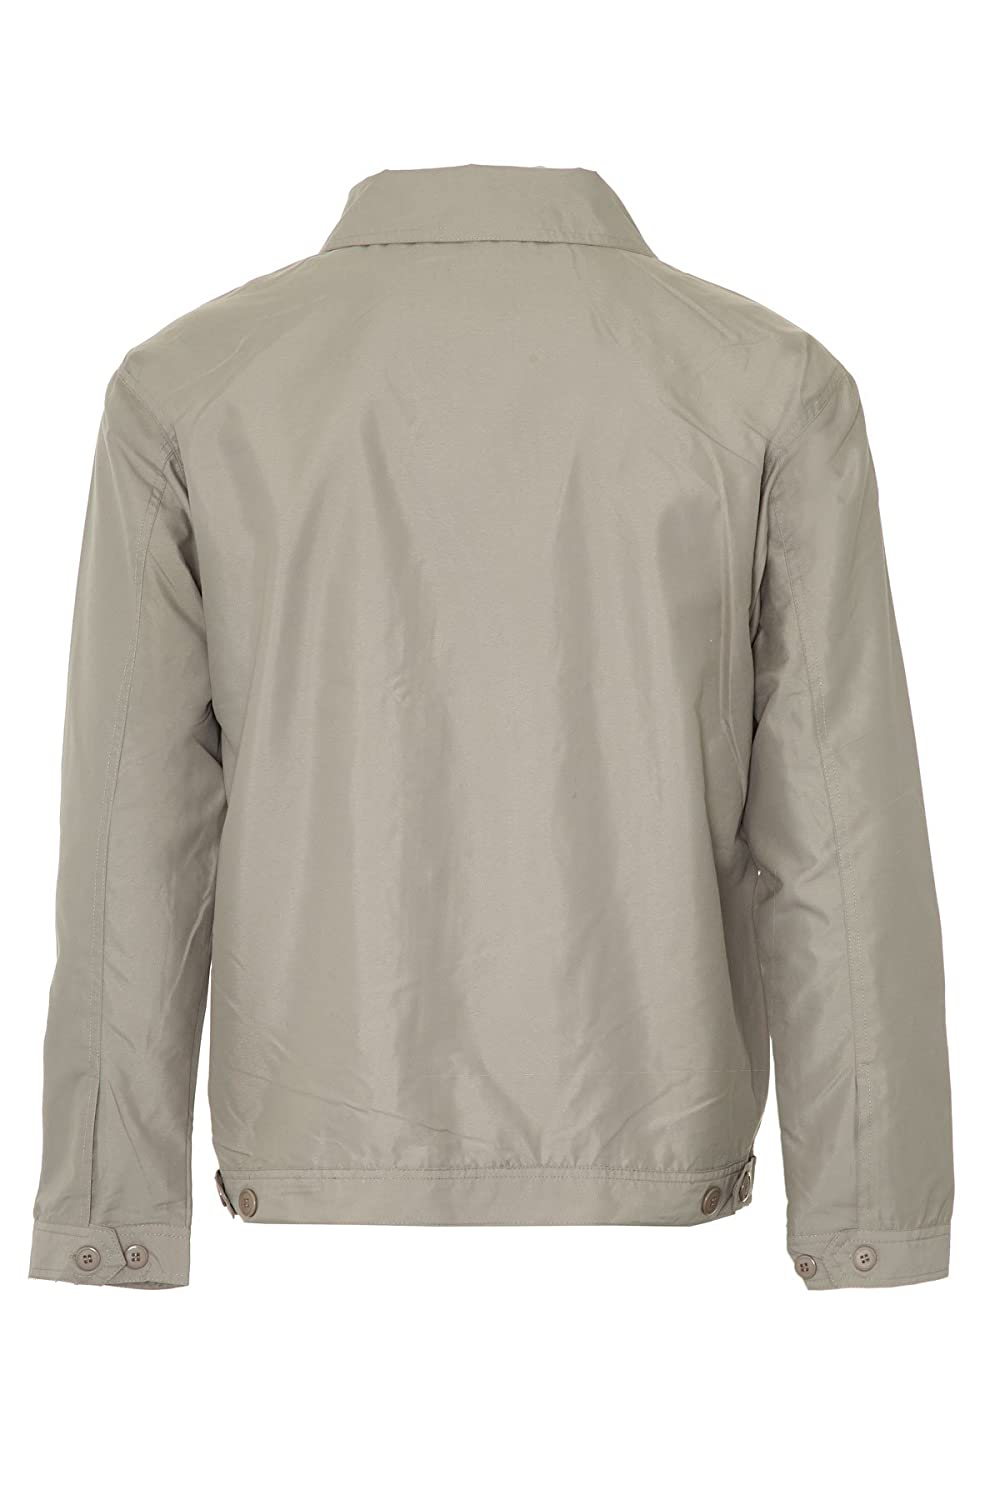 3f1cd5f0626 Champion Men's Birkdale Country Estate Summer Coat Jacket 3600:  Amazon.co.uk: Clothing